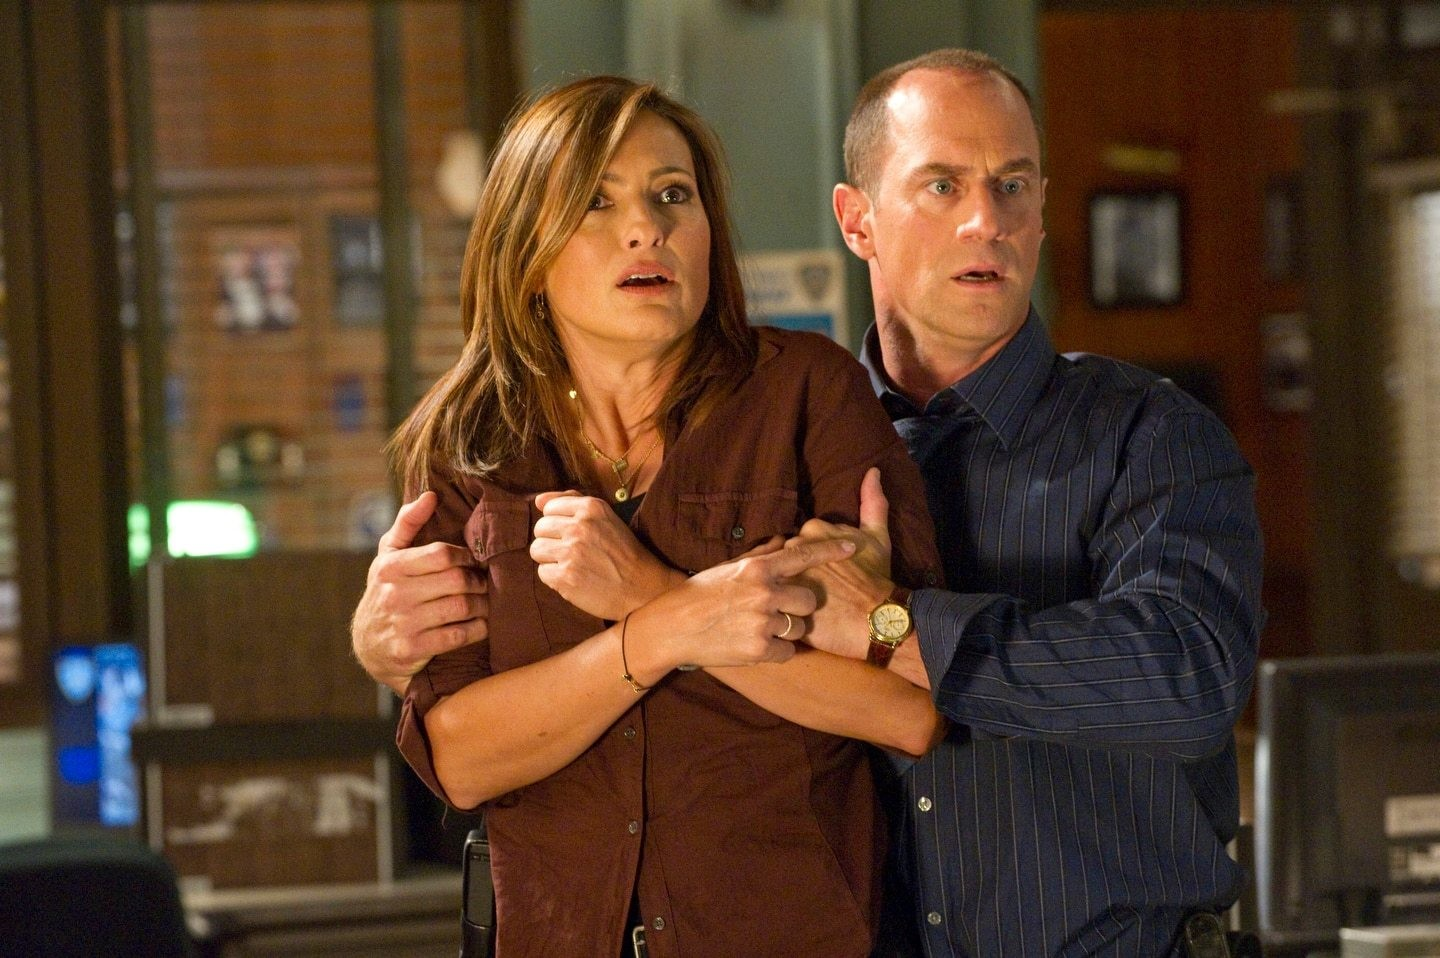 The Ship That Never Sailed: Mourning For Benson And Stabler